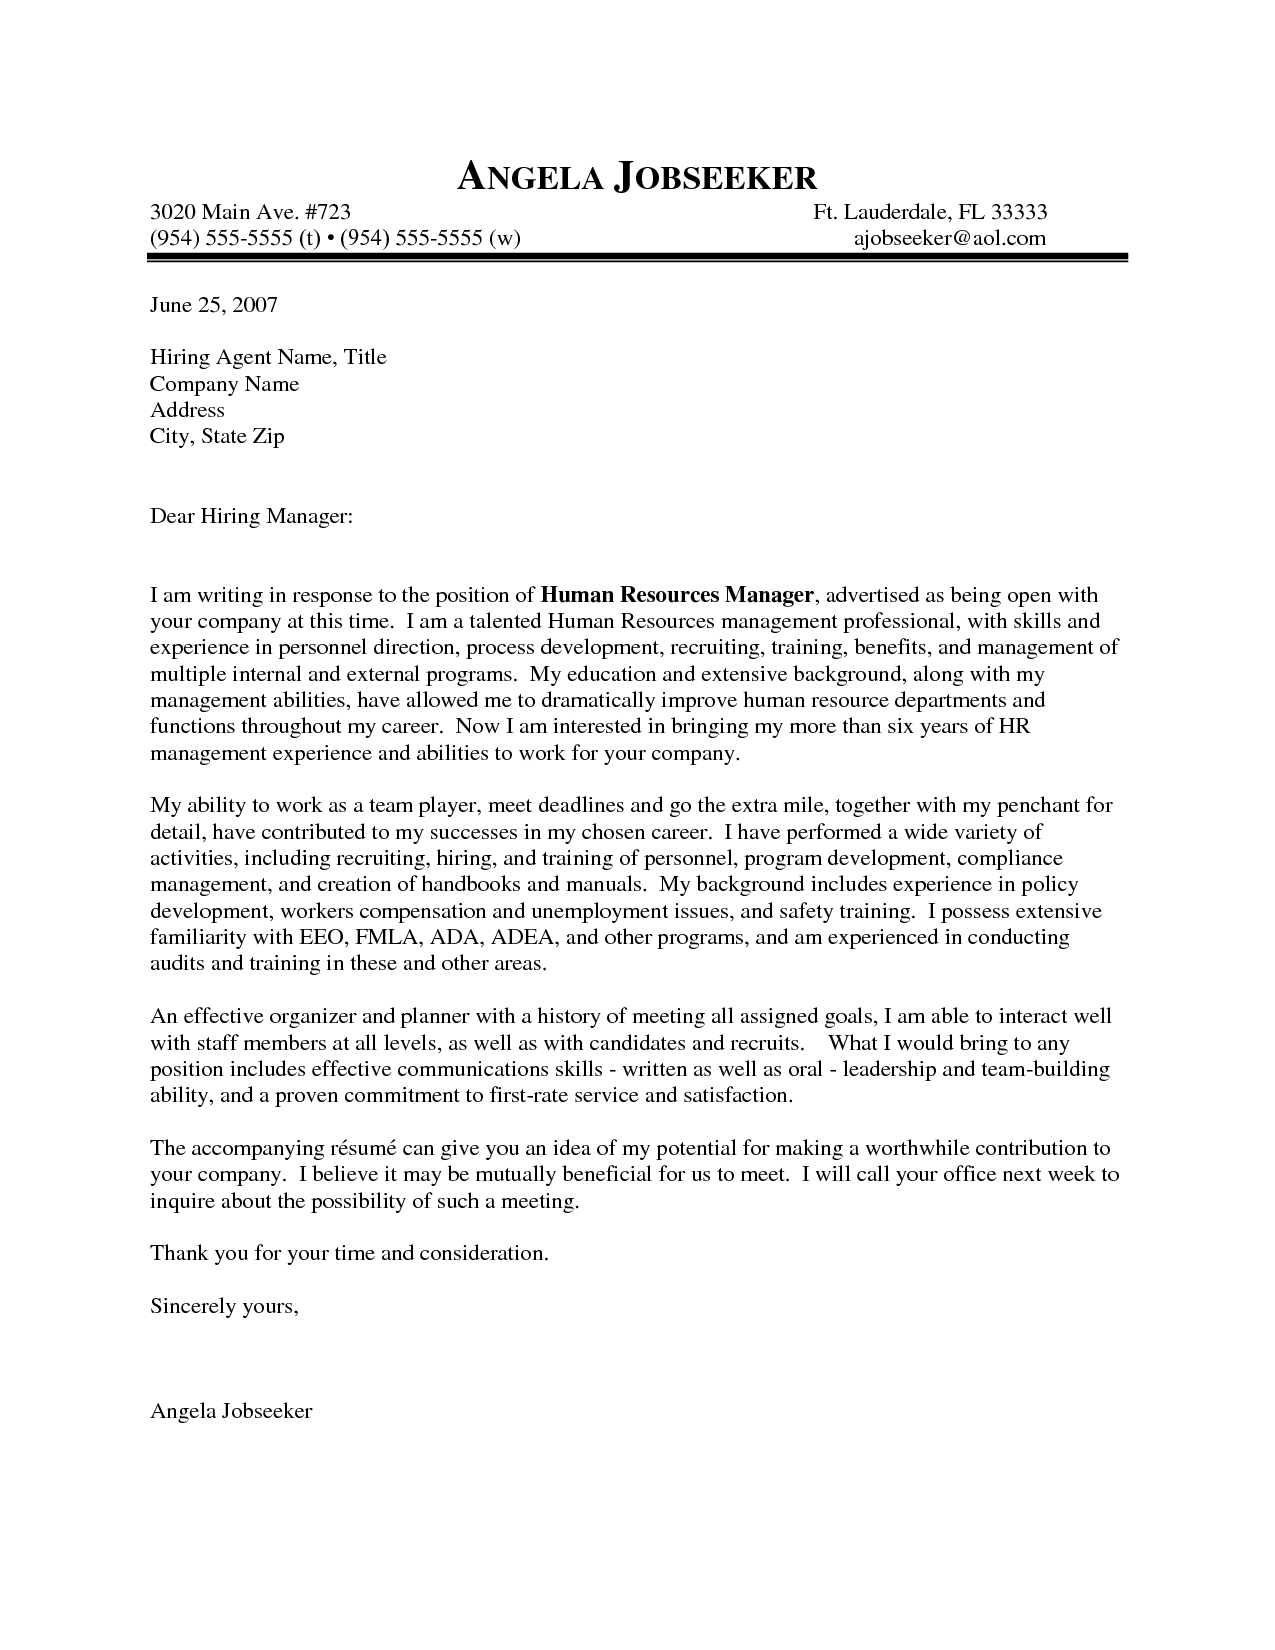 Here is a cover letter sample to give you some ideas and inspiration here is a cover letter sample to give you some ideas and inspiration for writing your own cover letter youre hired pinterest cover letter sample madrichimfo Choice Image